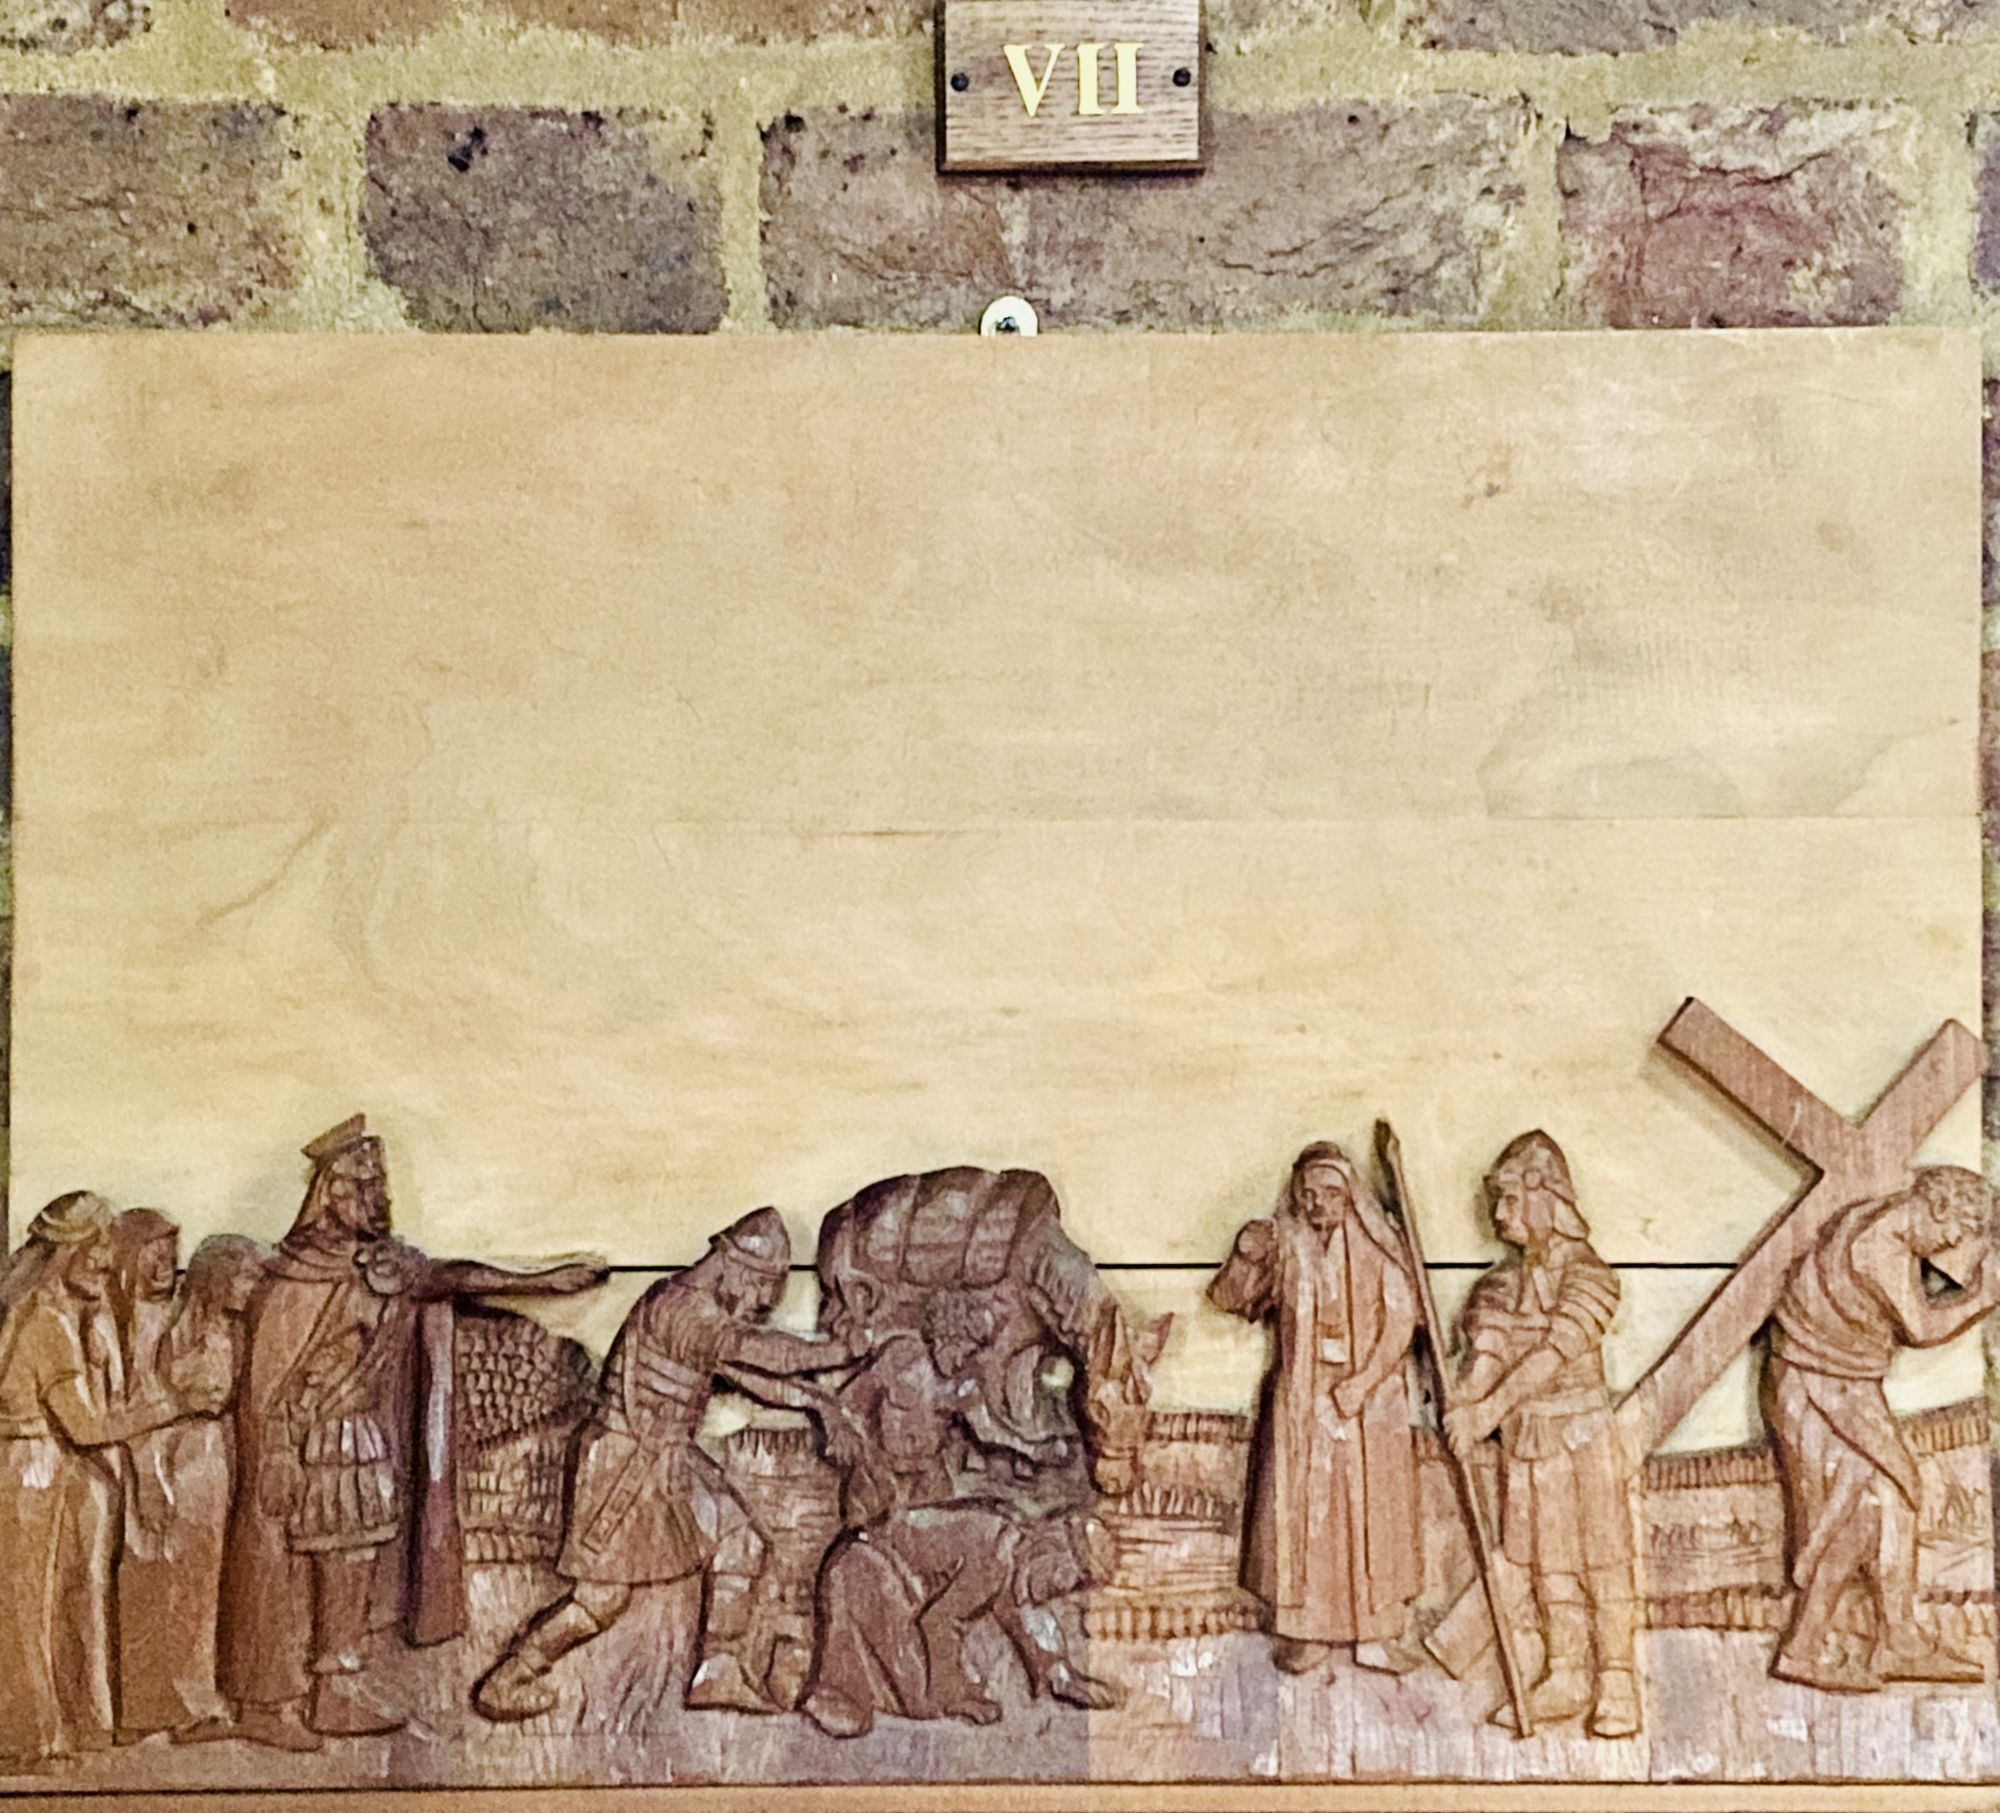 Station of the Cross no 7